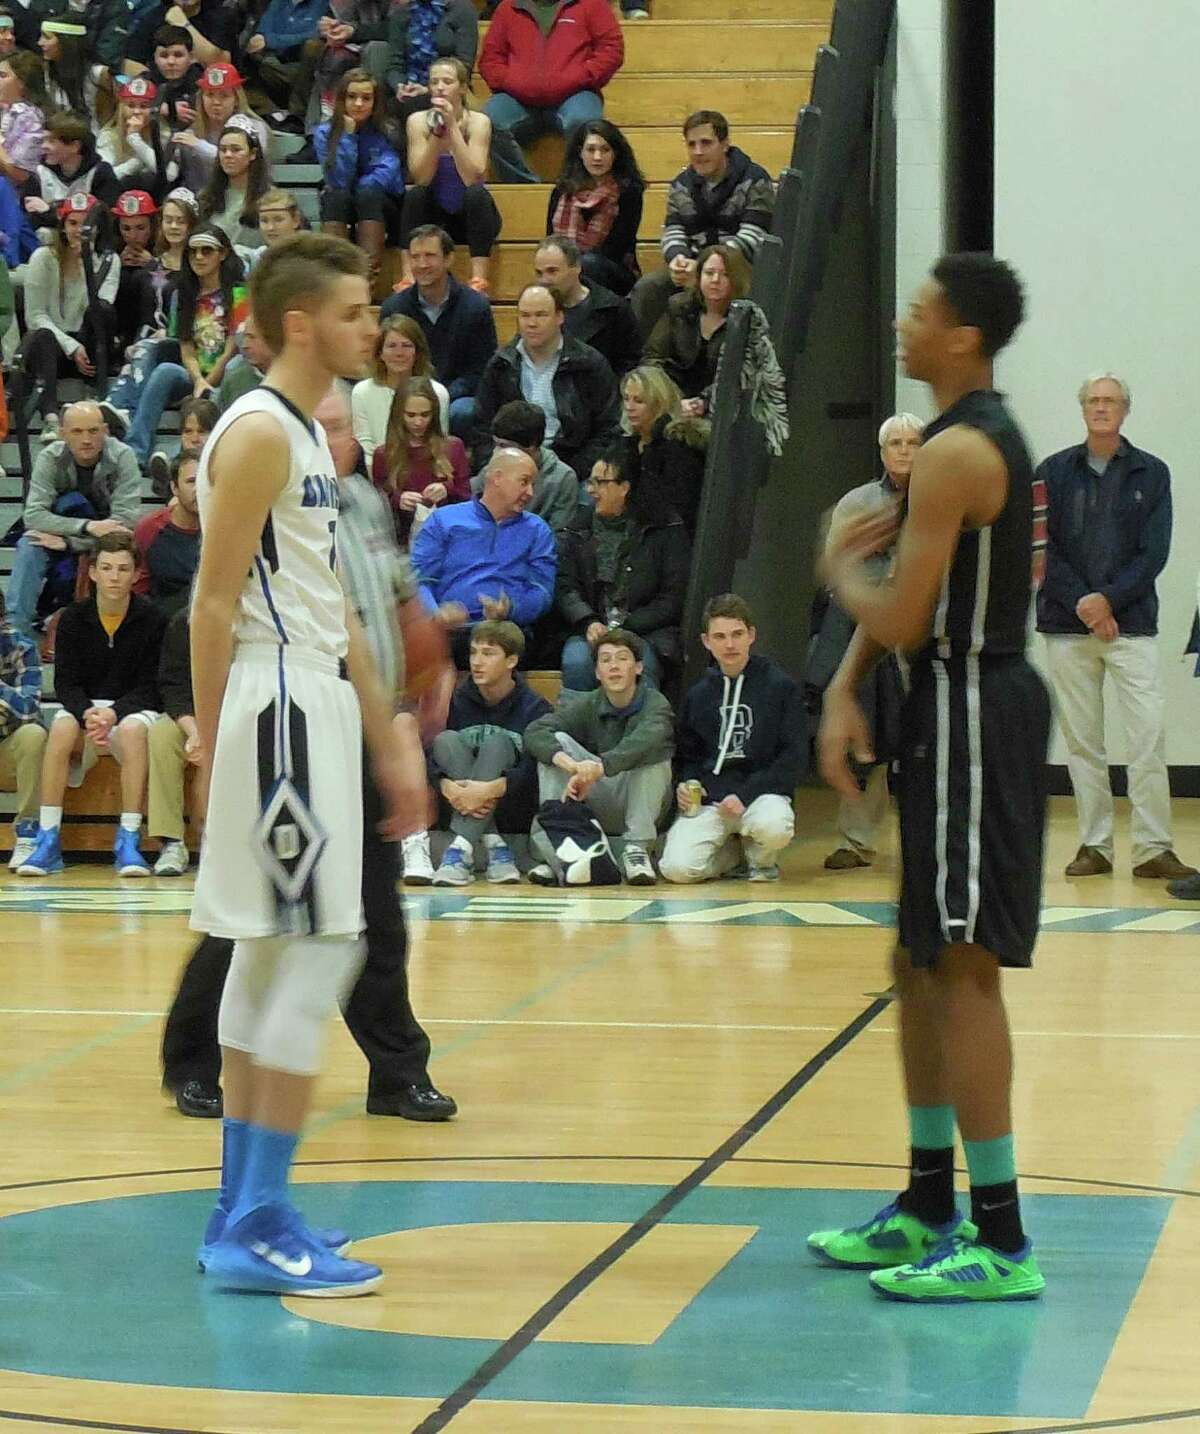 """6' 7"""" centers Alex Preston (left) and Kwe Askew get set for the jump ball in last Friday's game betwen Darien and Stamford. Askew had 14 points, Preston had 12."""